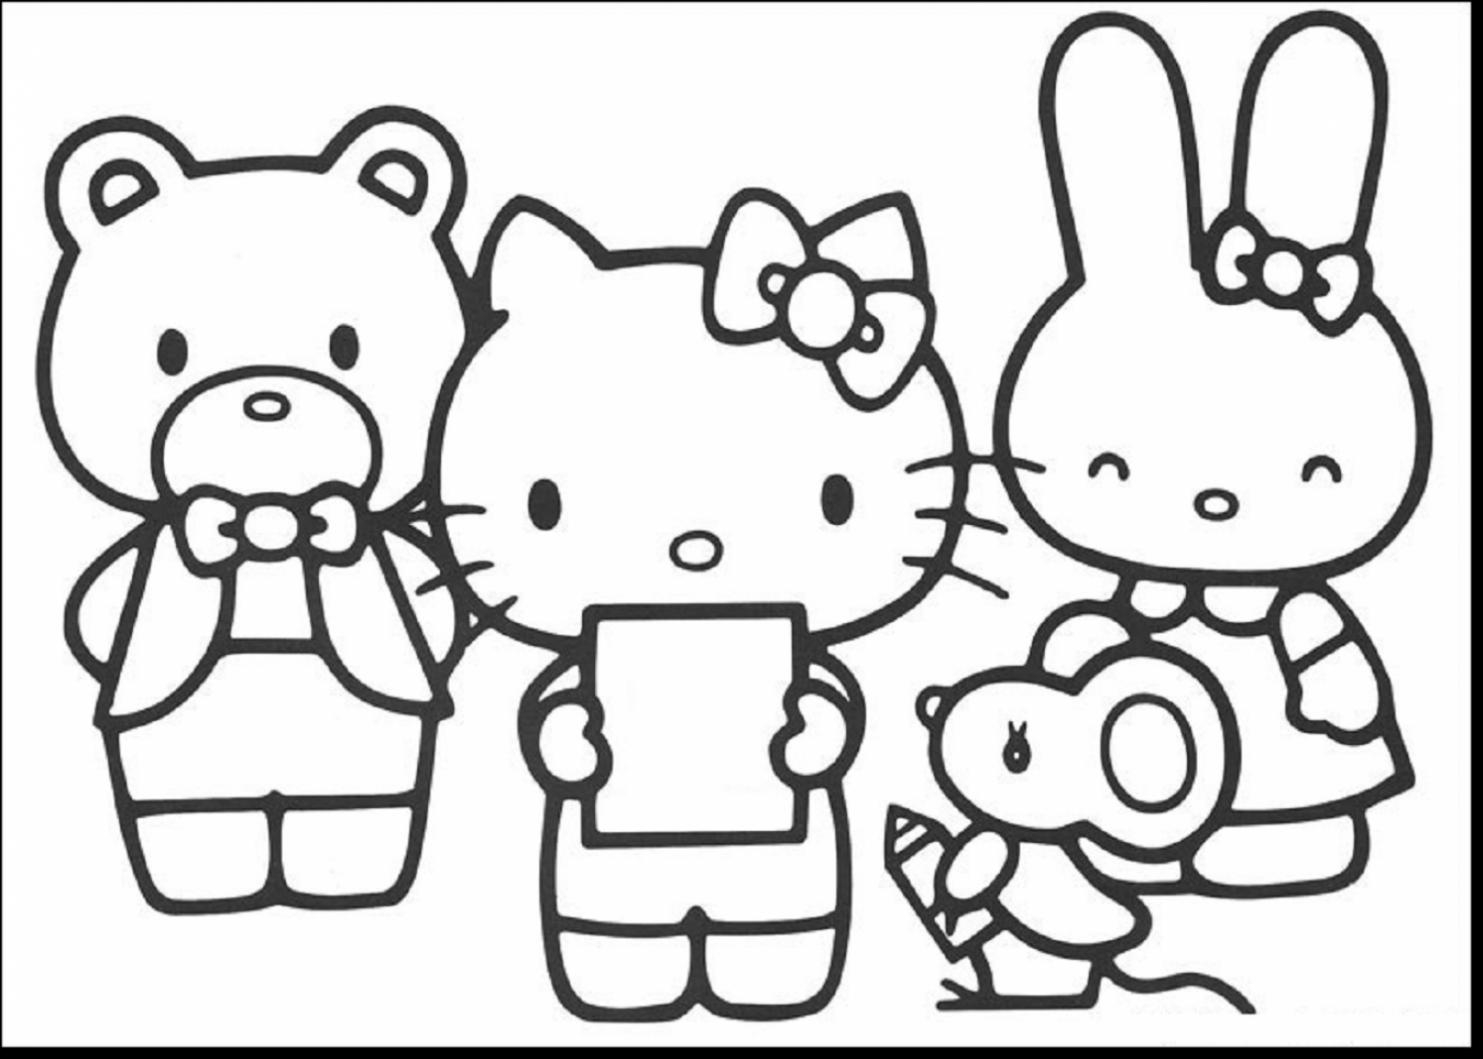 1483x1059 Coloring Pages For Kids Cartoons Hello Kitty Hello Kitty Angel